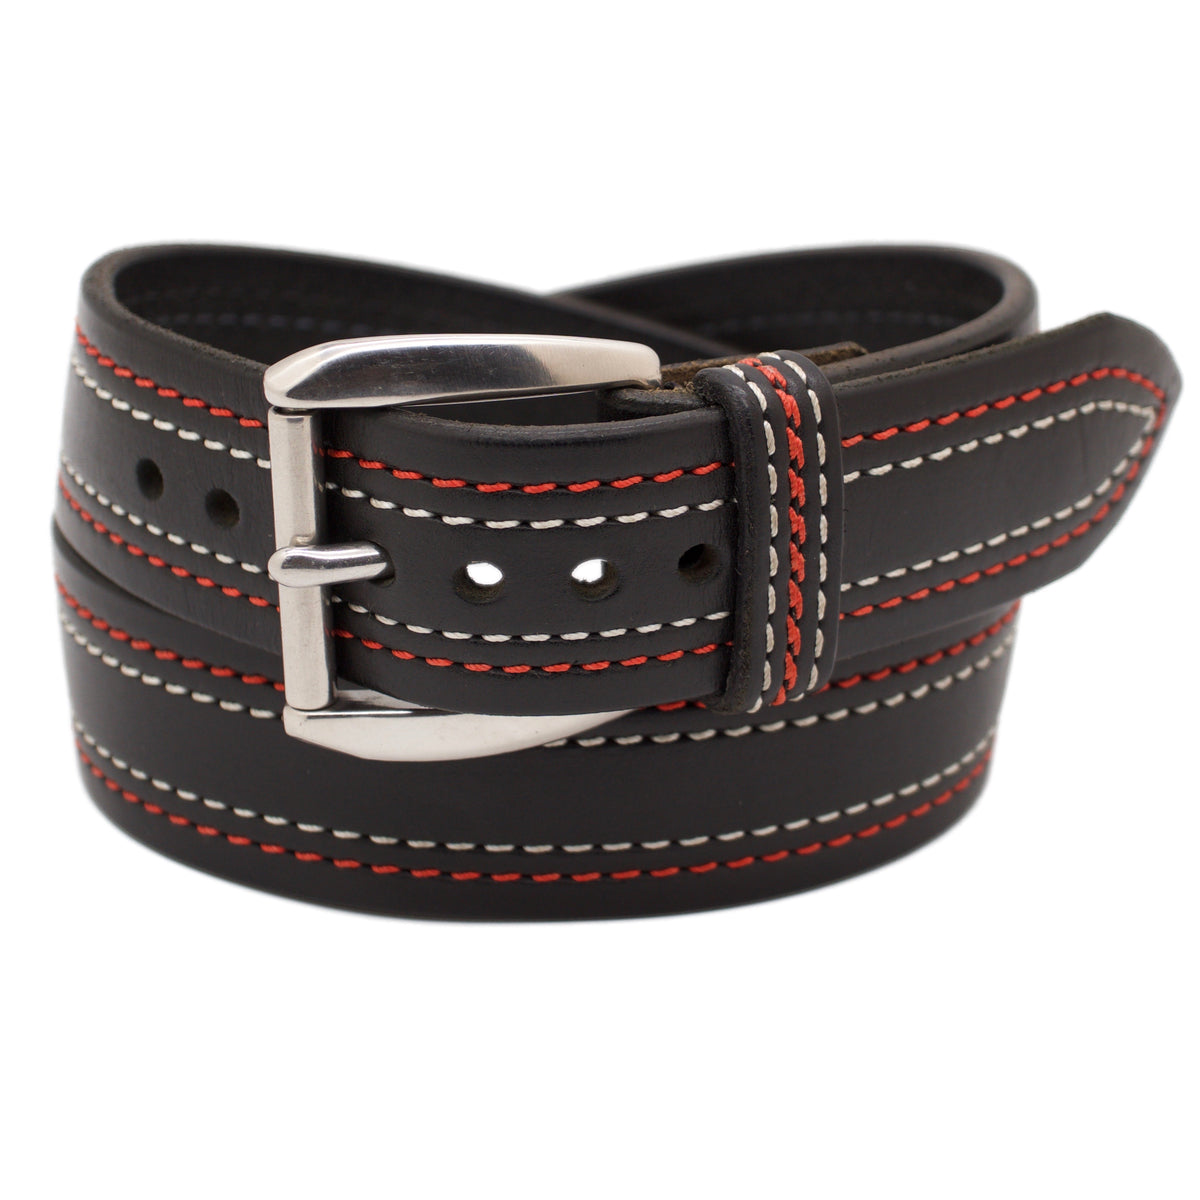 The ENZO WIDE 1.75 Leather Belt